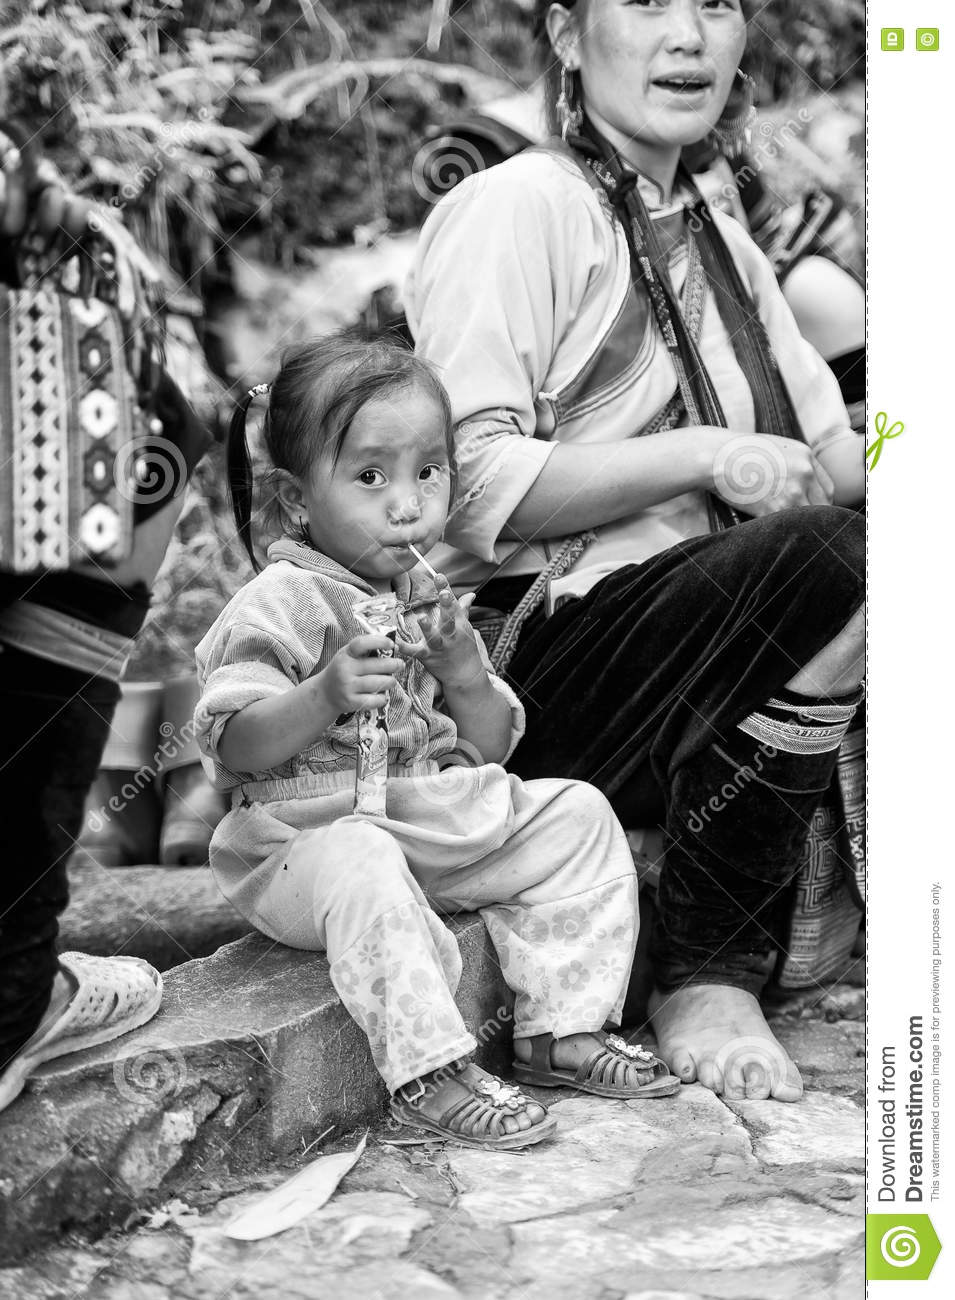 Real People In Vietnam, In Black And White Editorial Image